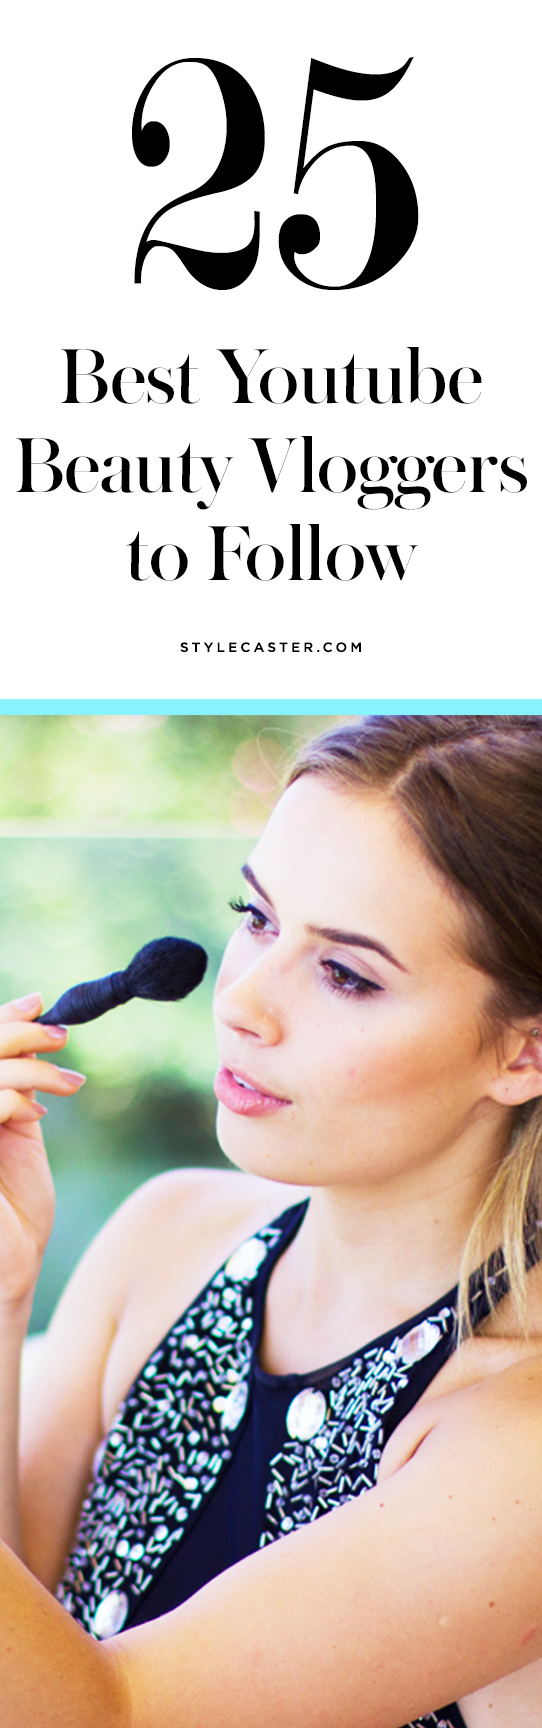 The 25 best YouTube beauty vloggers | @stylecaster